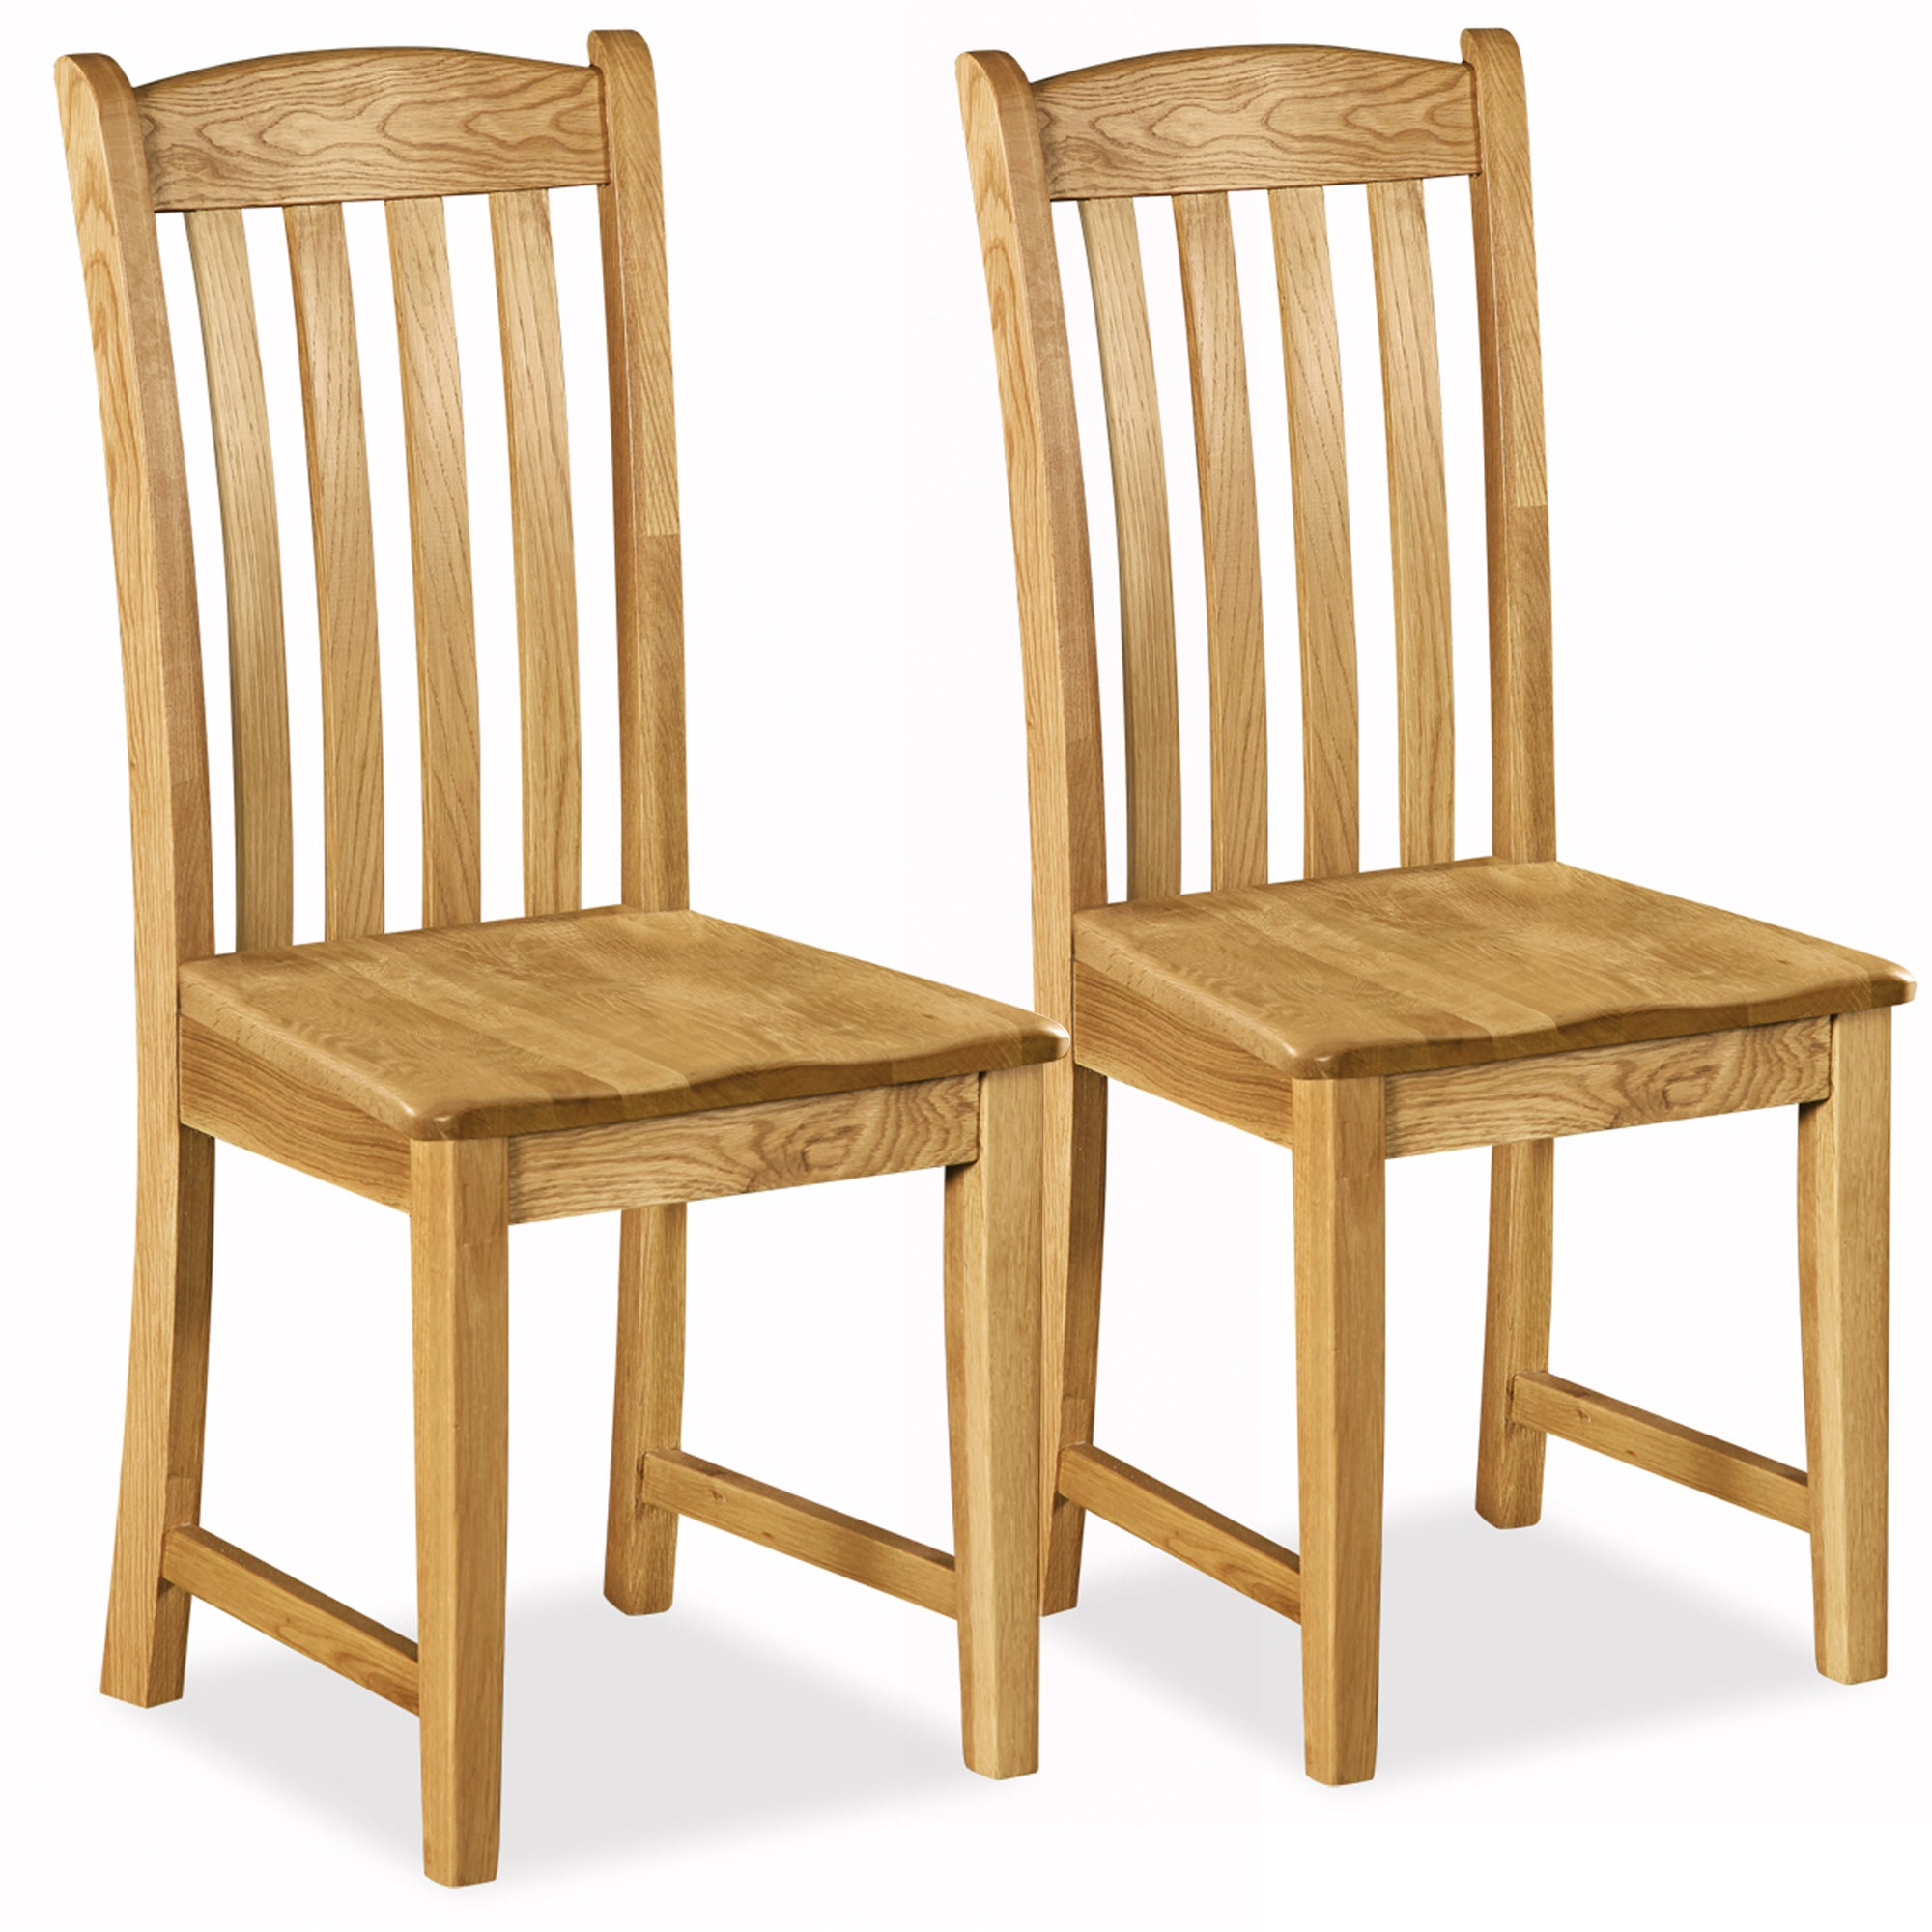 Aylesbury Pair of Oak Dining Chairs